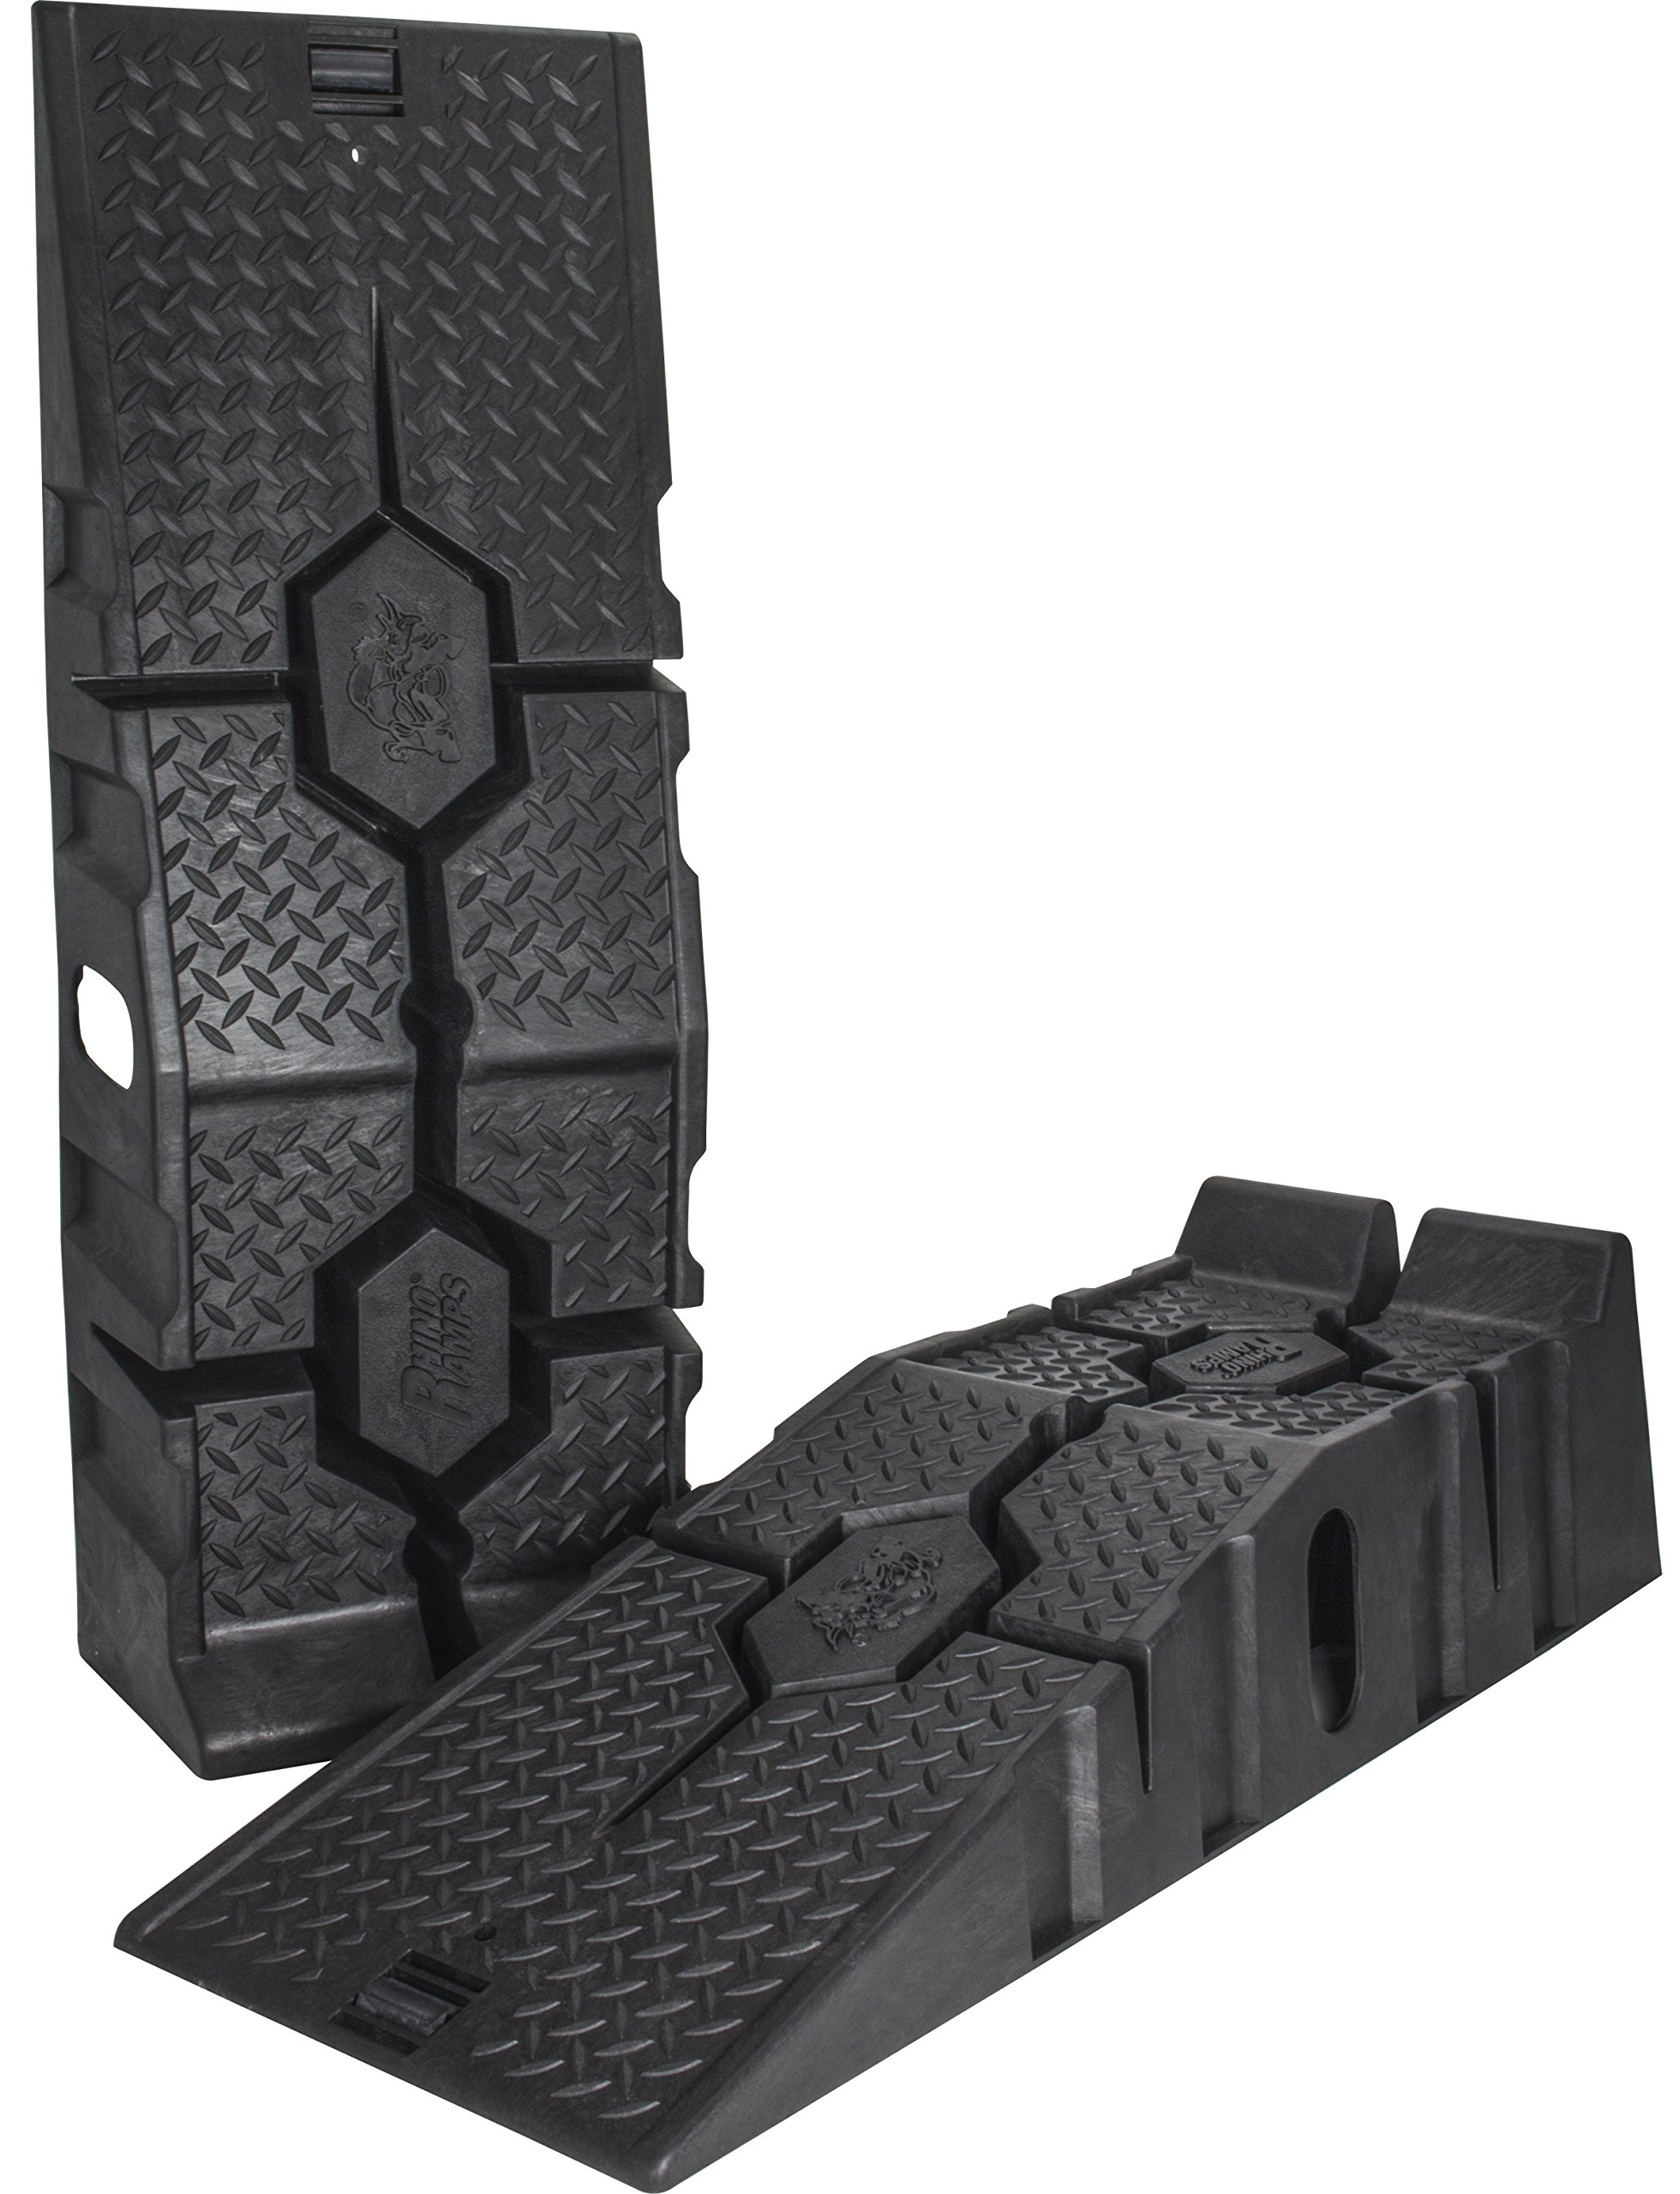 RhinoGear 11912 RhinoRamps MAX Vehicle Ramps - Set of 2 (16,000lb. GVW Capacity) by RhinoGear